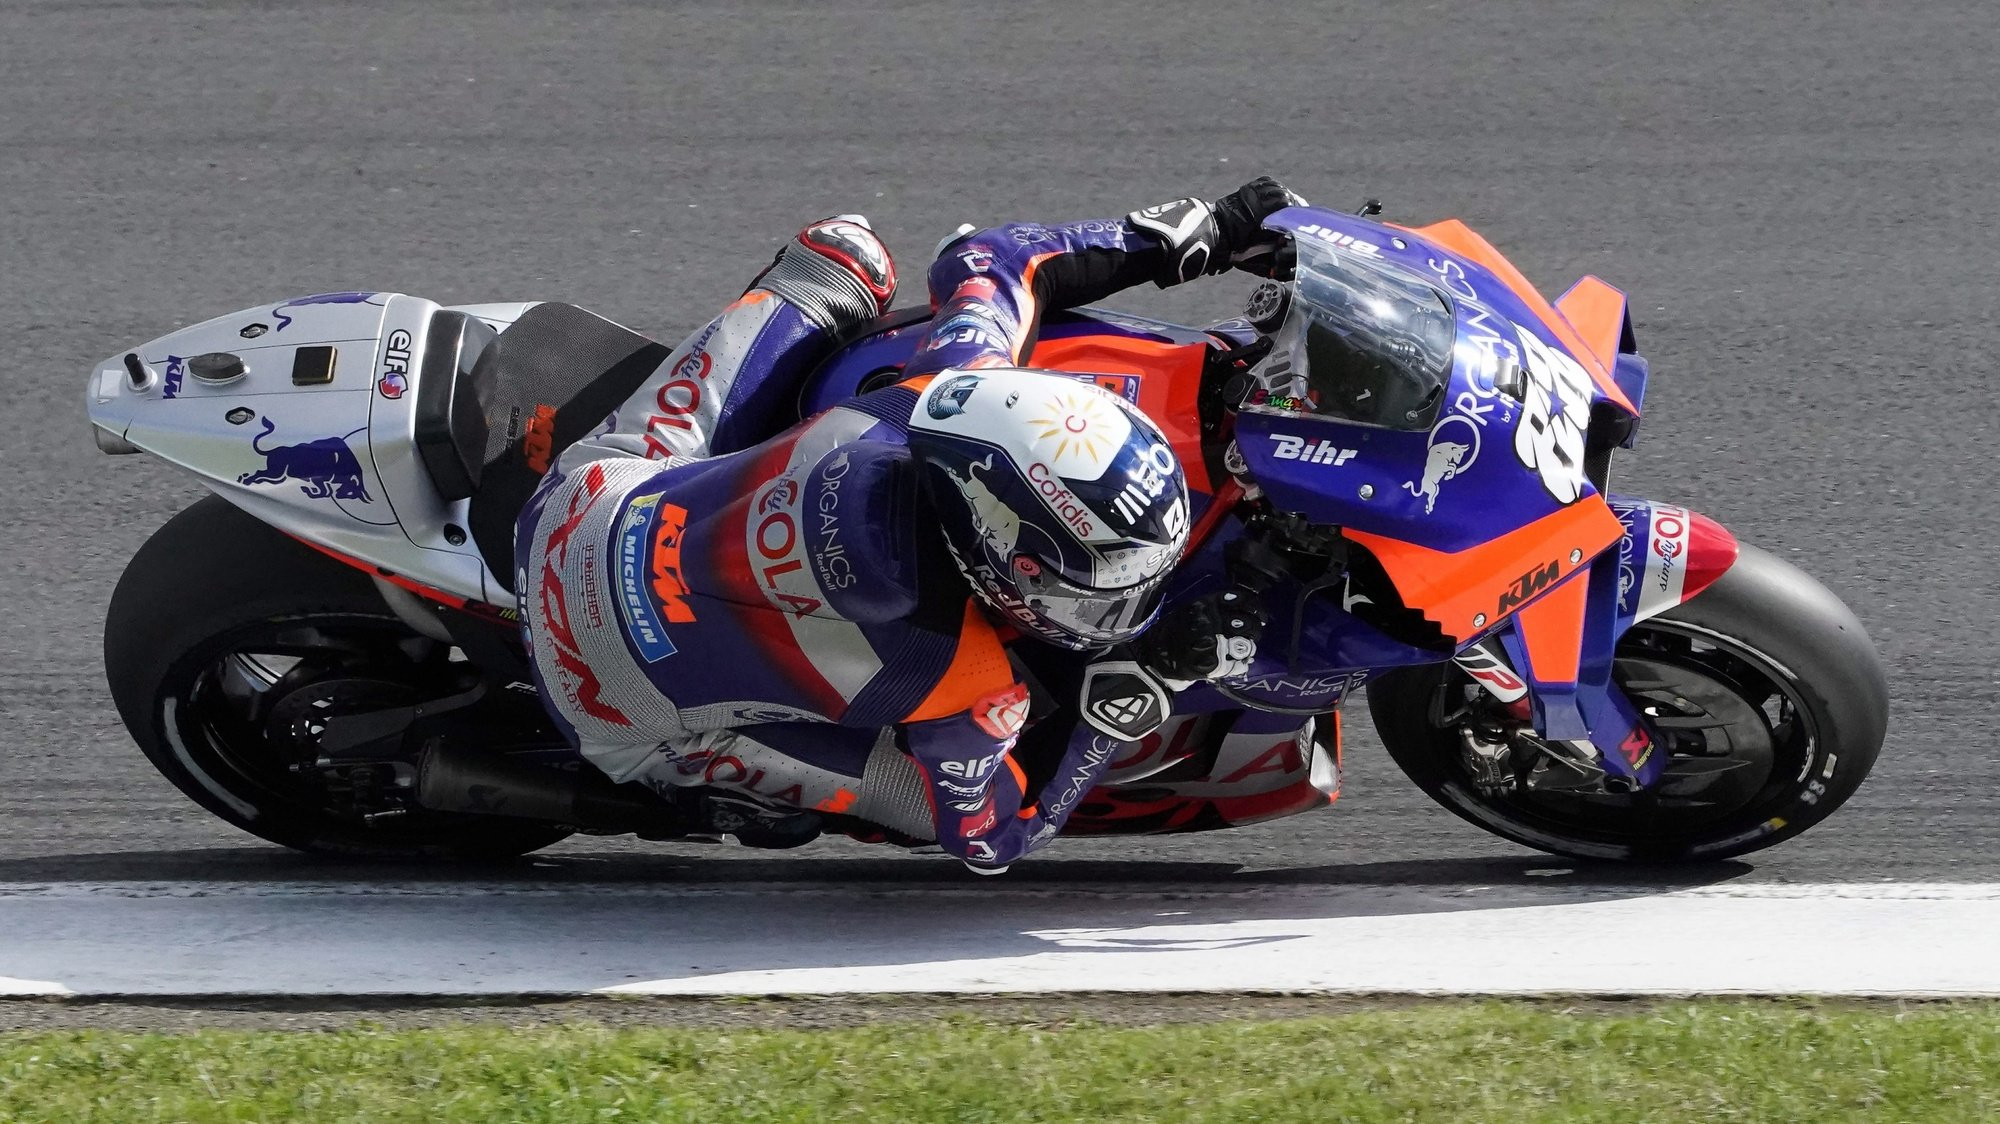 epa08734381 Portugues Moto GP rider Miguel Oliveira of Red Bull KTM Tech 3 during the Qualifying session of the French Motorcycling Grand Prix in Le Mans, France, 10 october 2020. The Motorcycling Grand Prix of France will take place on 11 October 2020.  EPA/EDDY LEMAISTRE